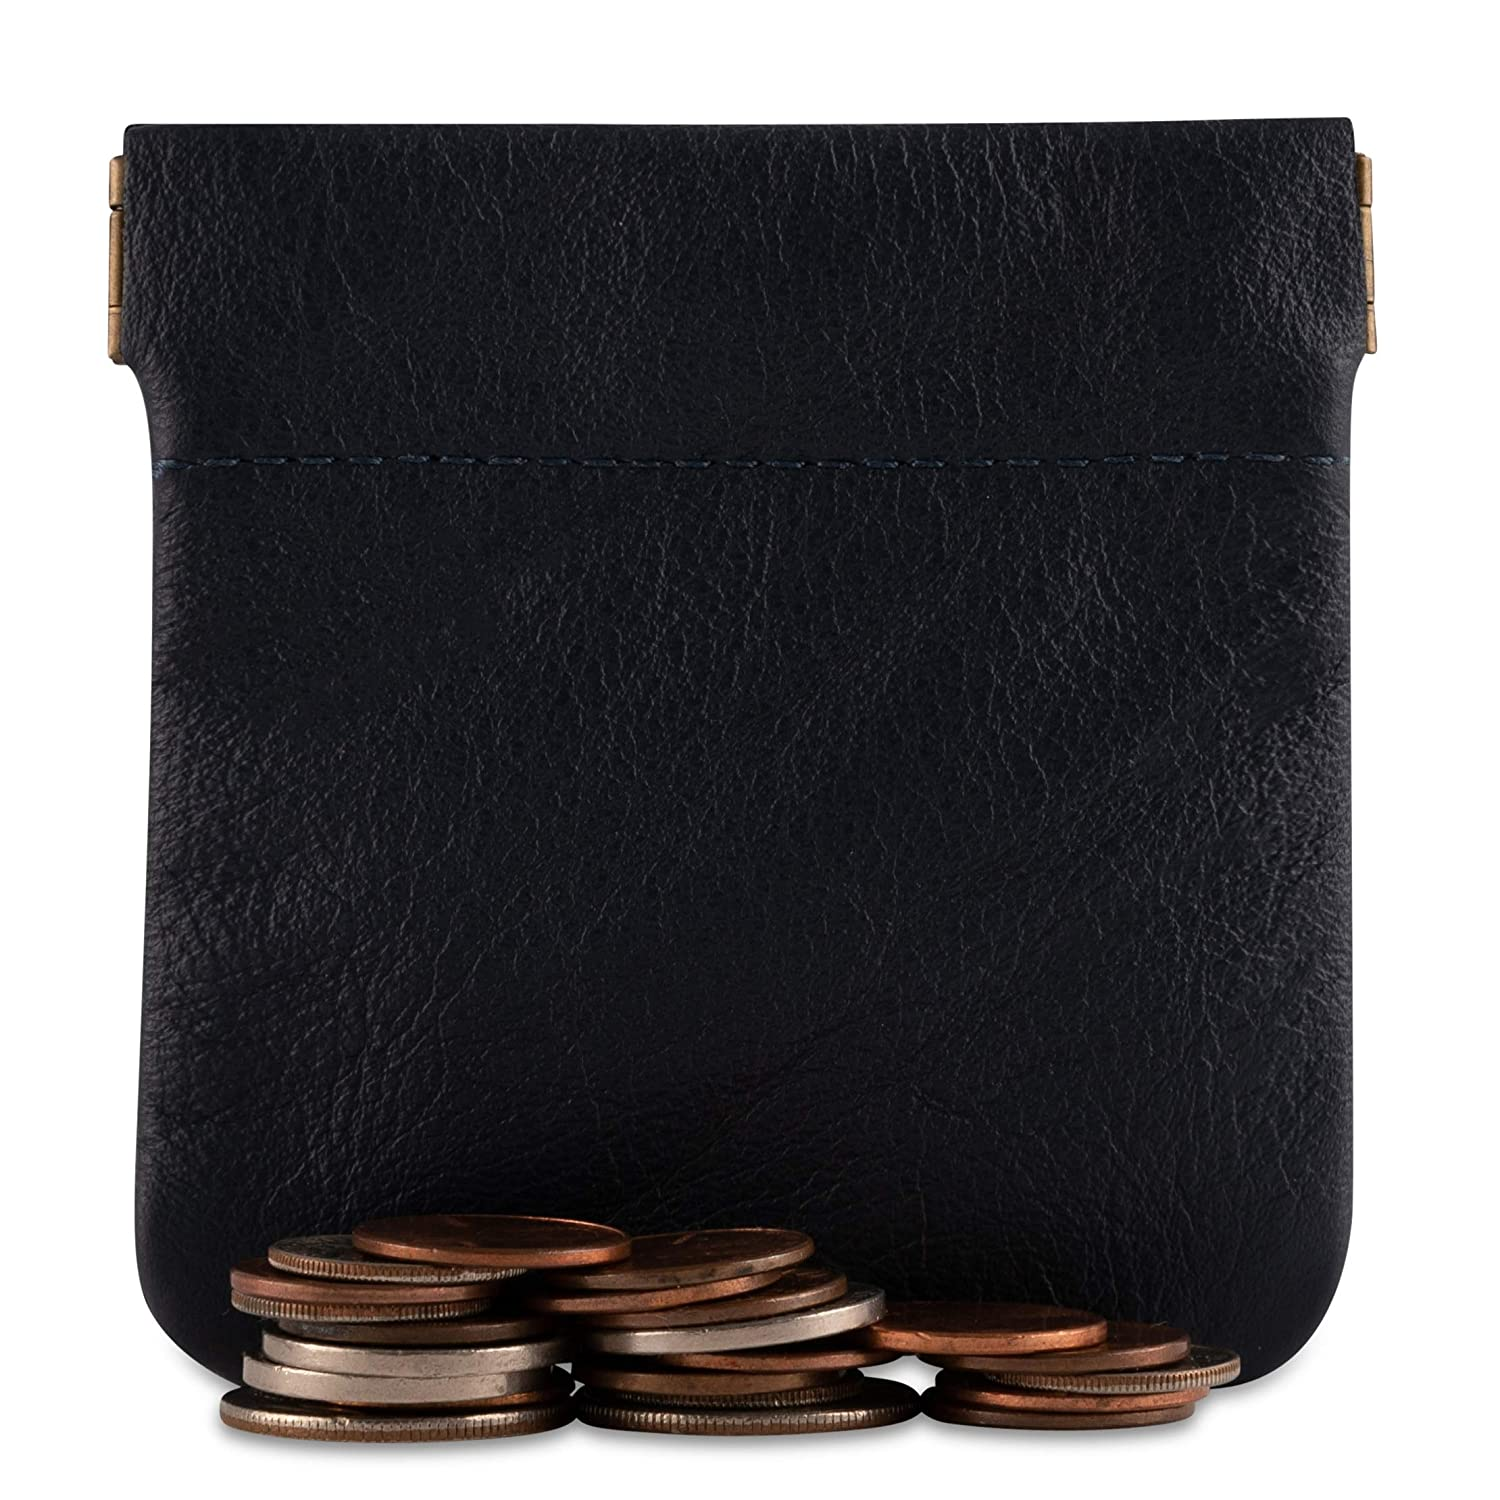 for Men//Woman Pouch Size 3.5 x 3.5 Change Holder Made in U.S.A Genuine Leather Squeeze Coin Purse